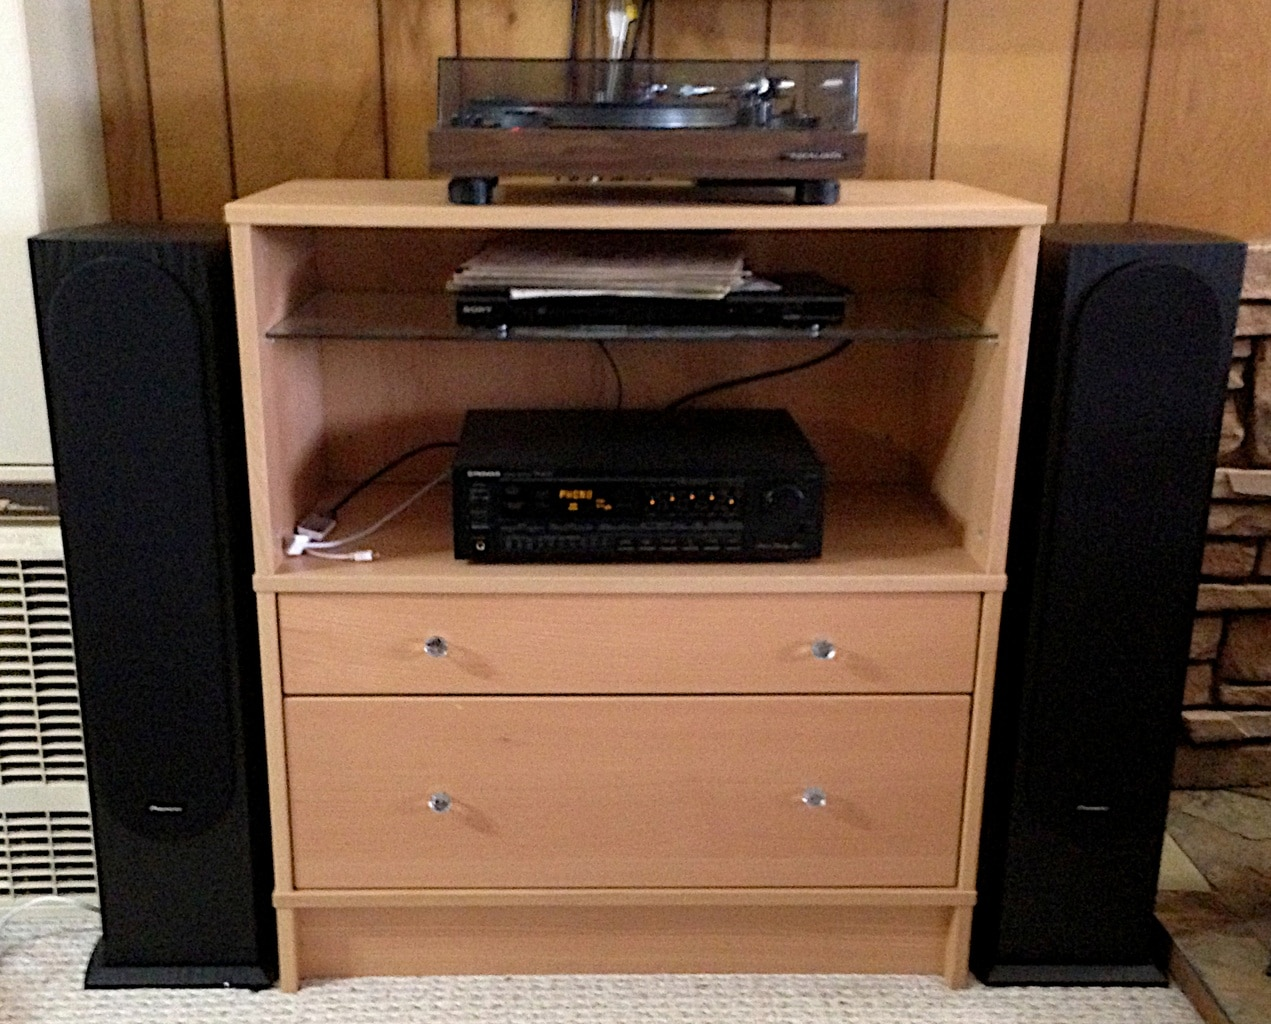 placing the best center channel speaker properly